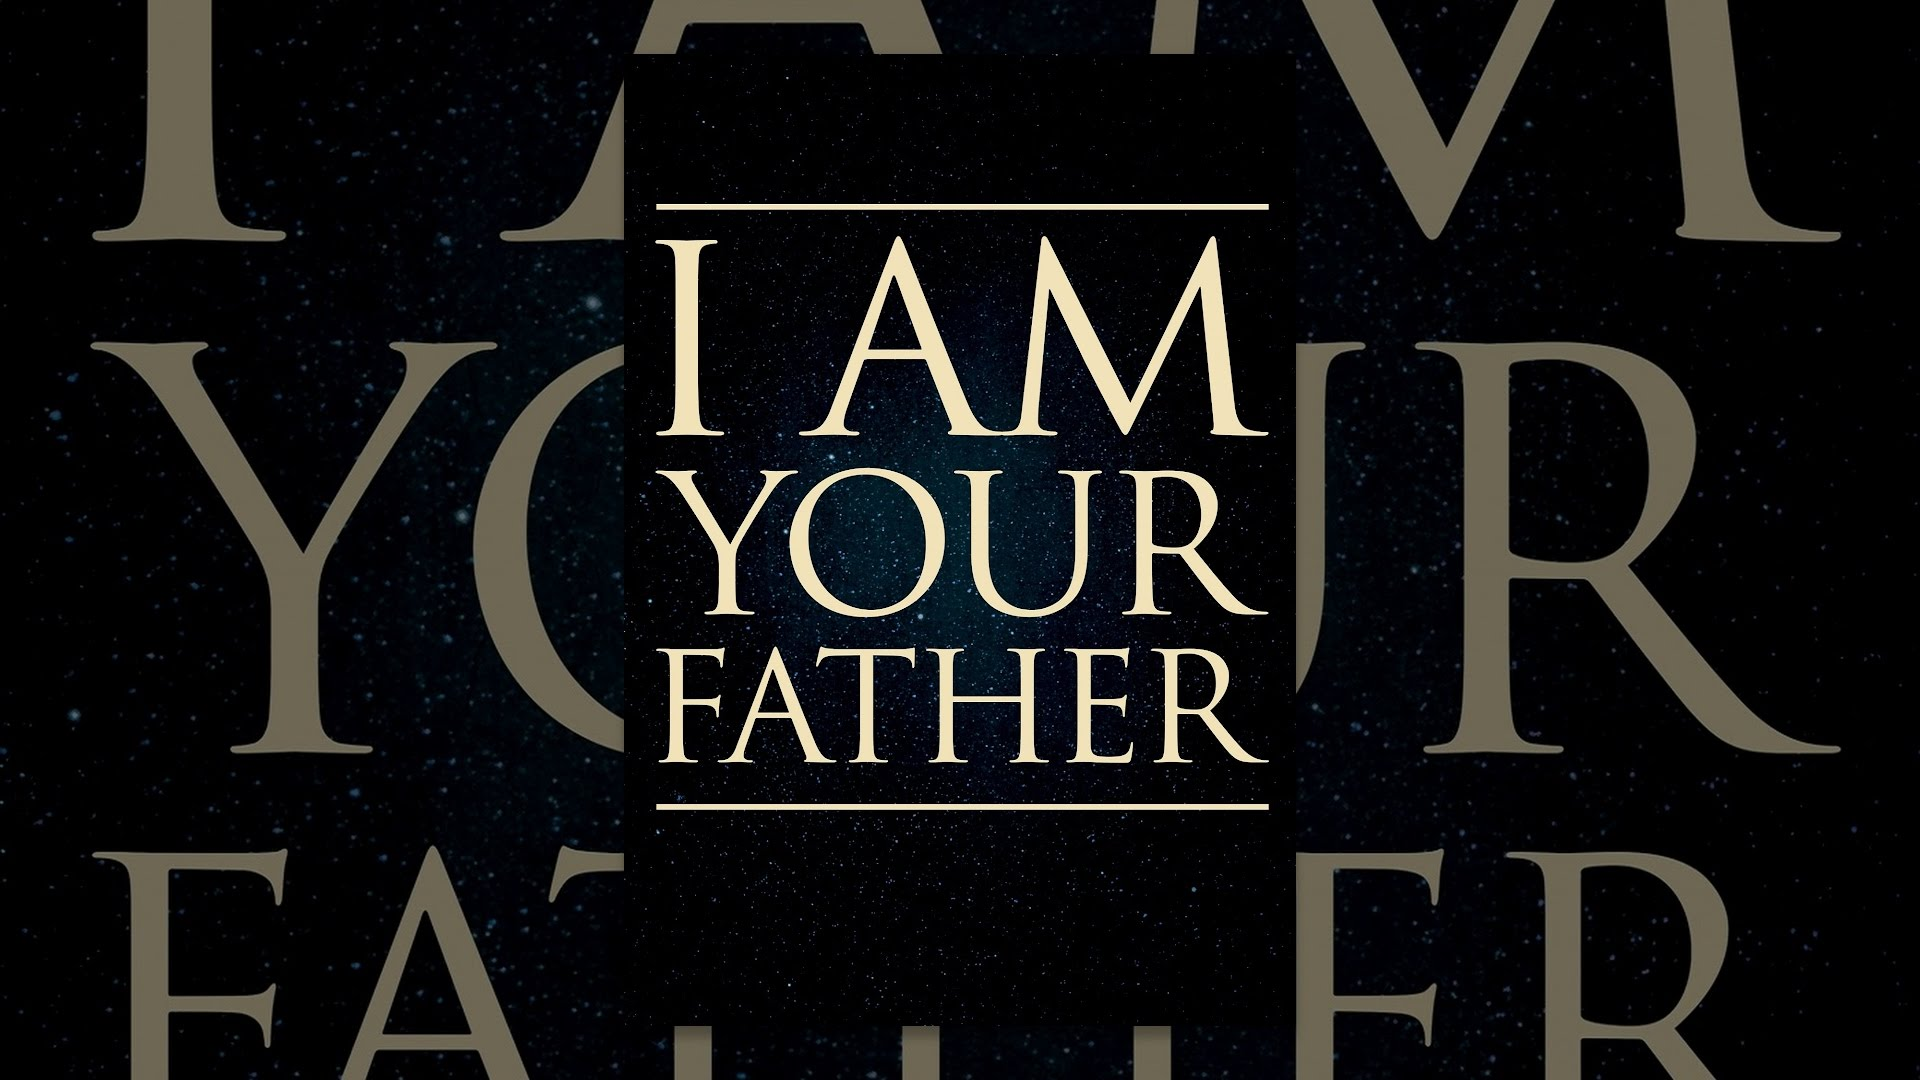 I Am Your Father - YouTube